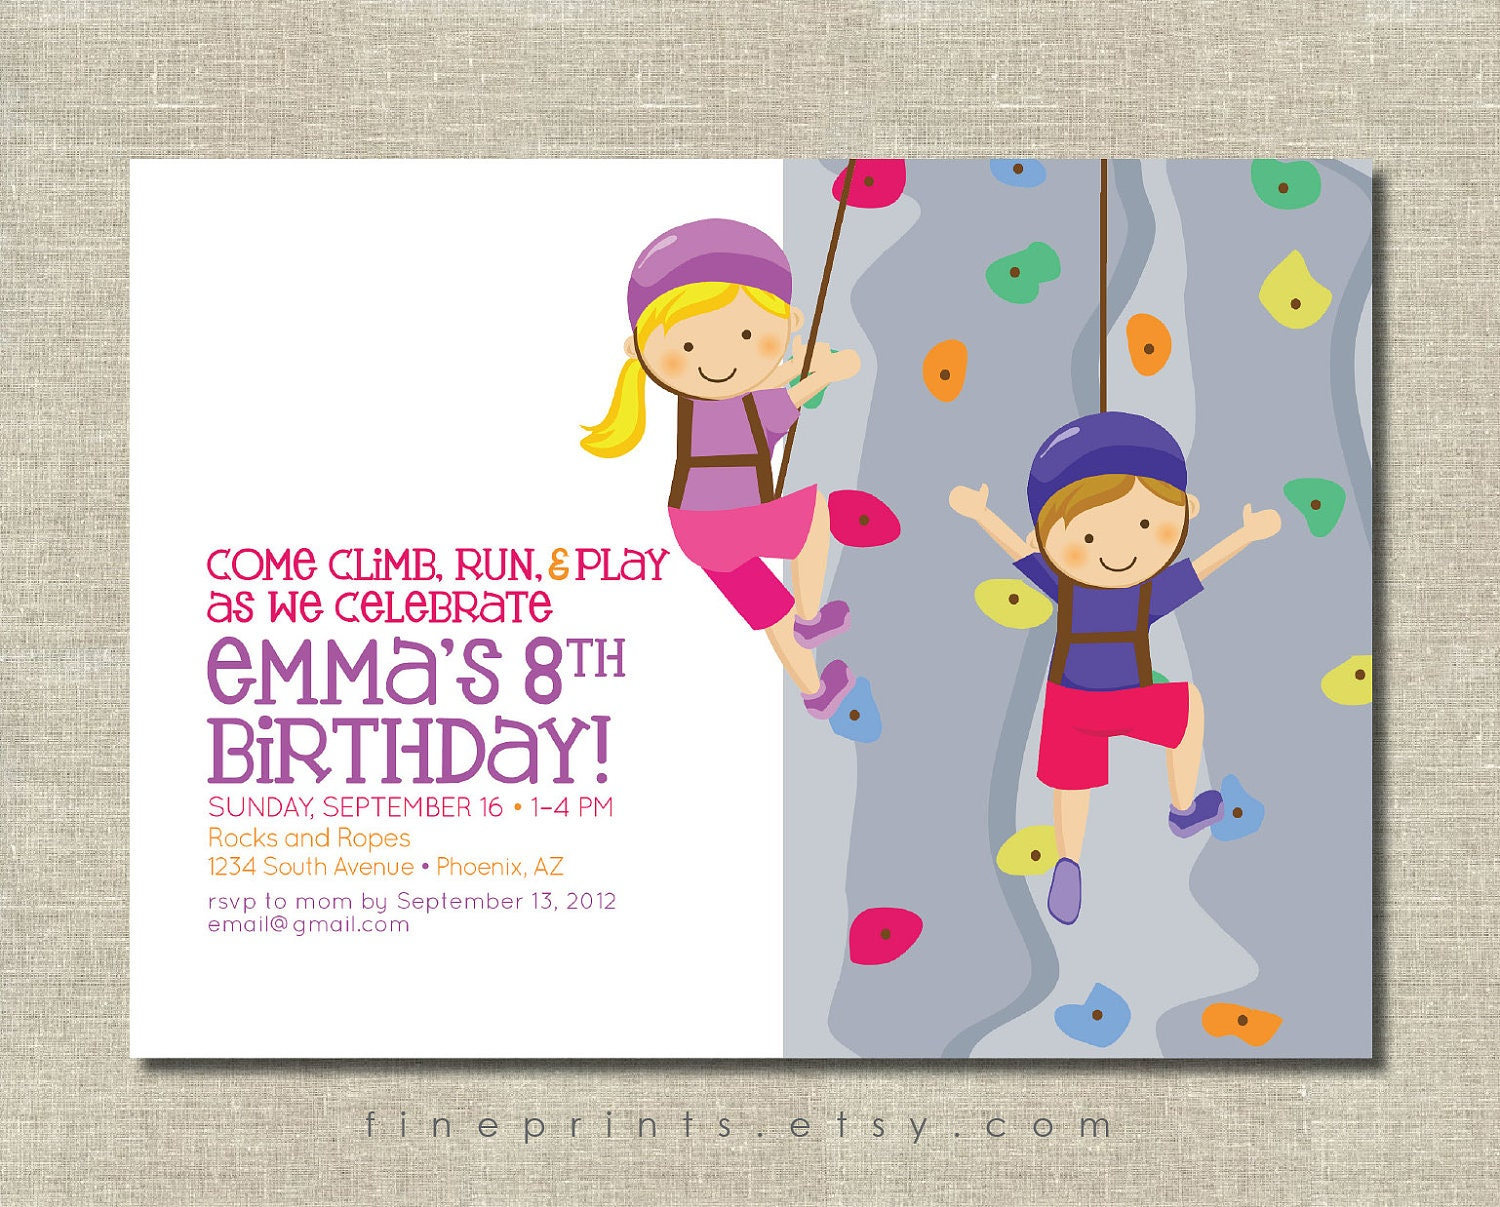 Indoor Rock Wall Climbing Clip Art Rock wall climbing party